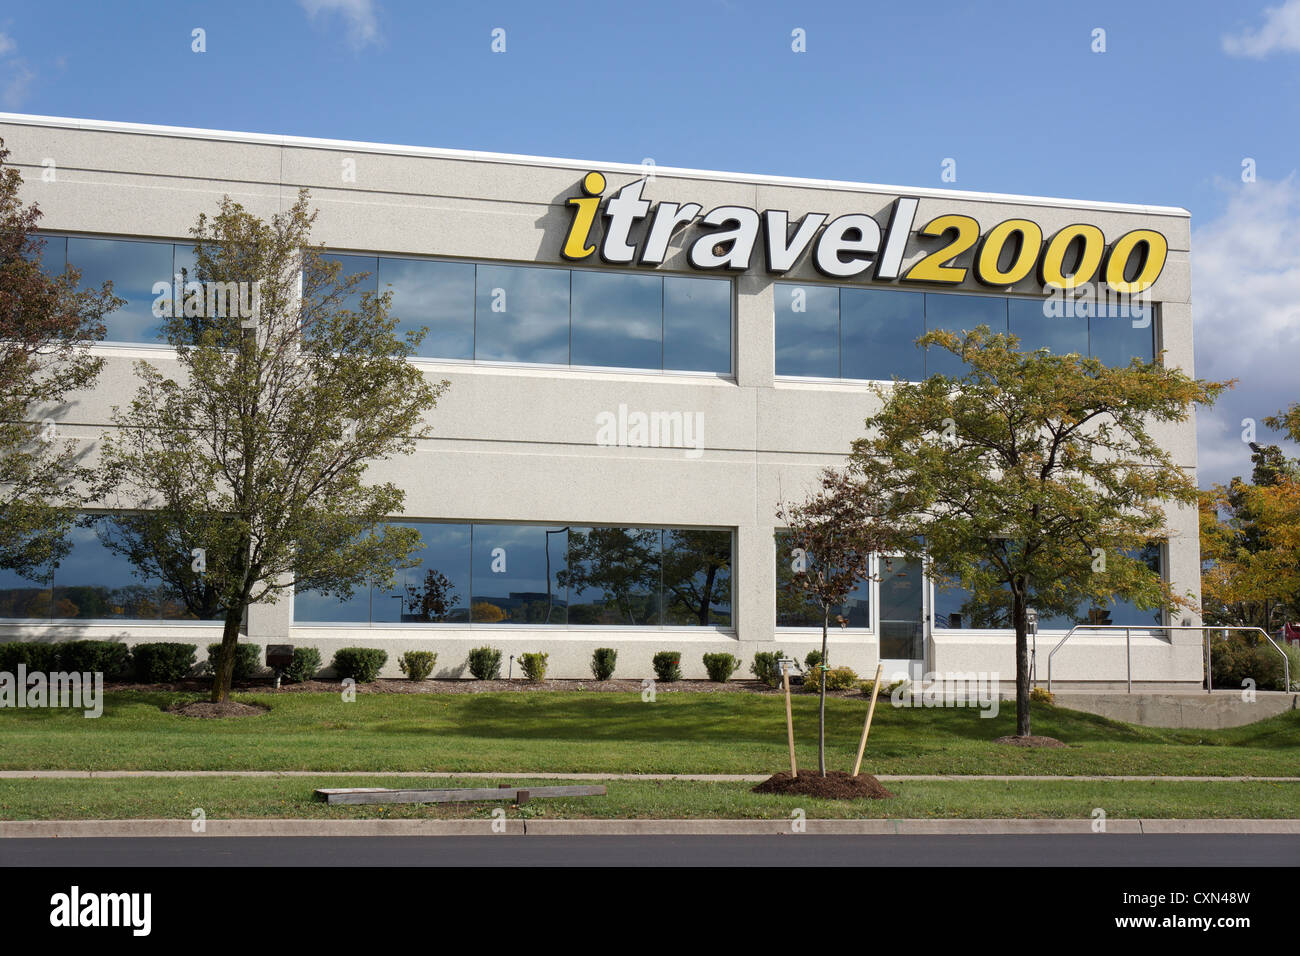 iTravel2000, travel agency office location, Mississauga, Ontario, Canada - Stock Image